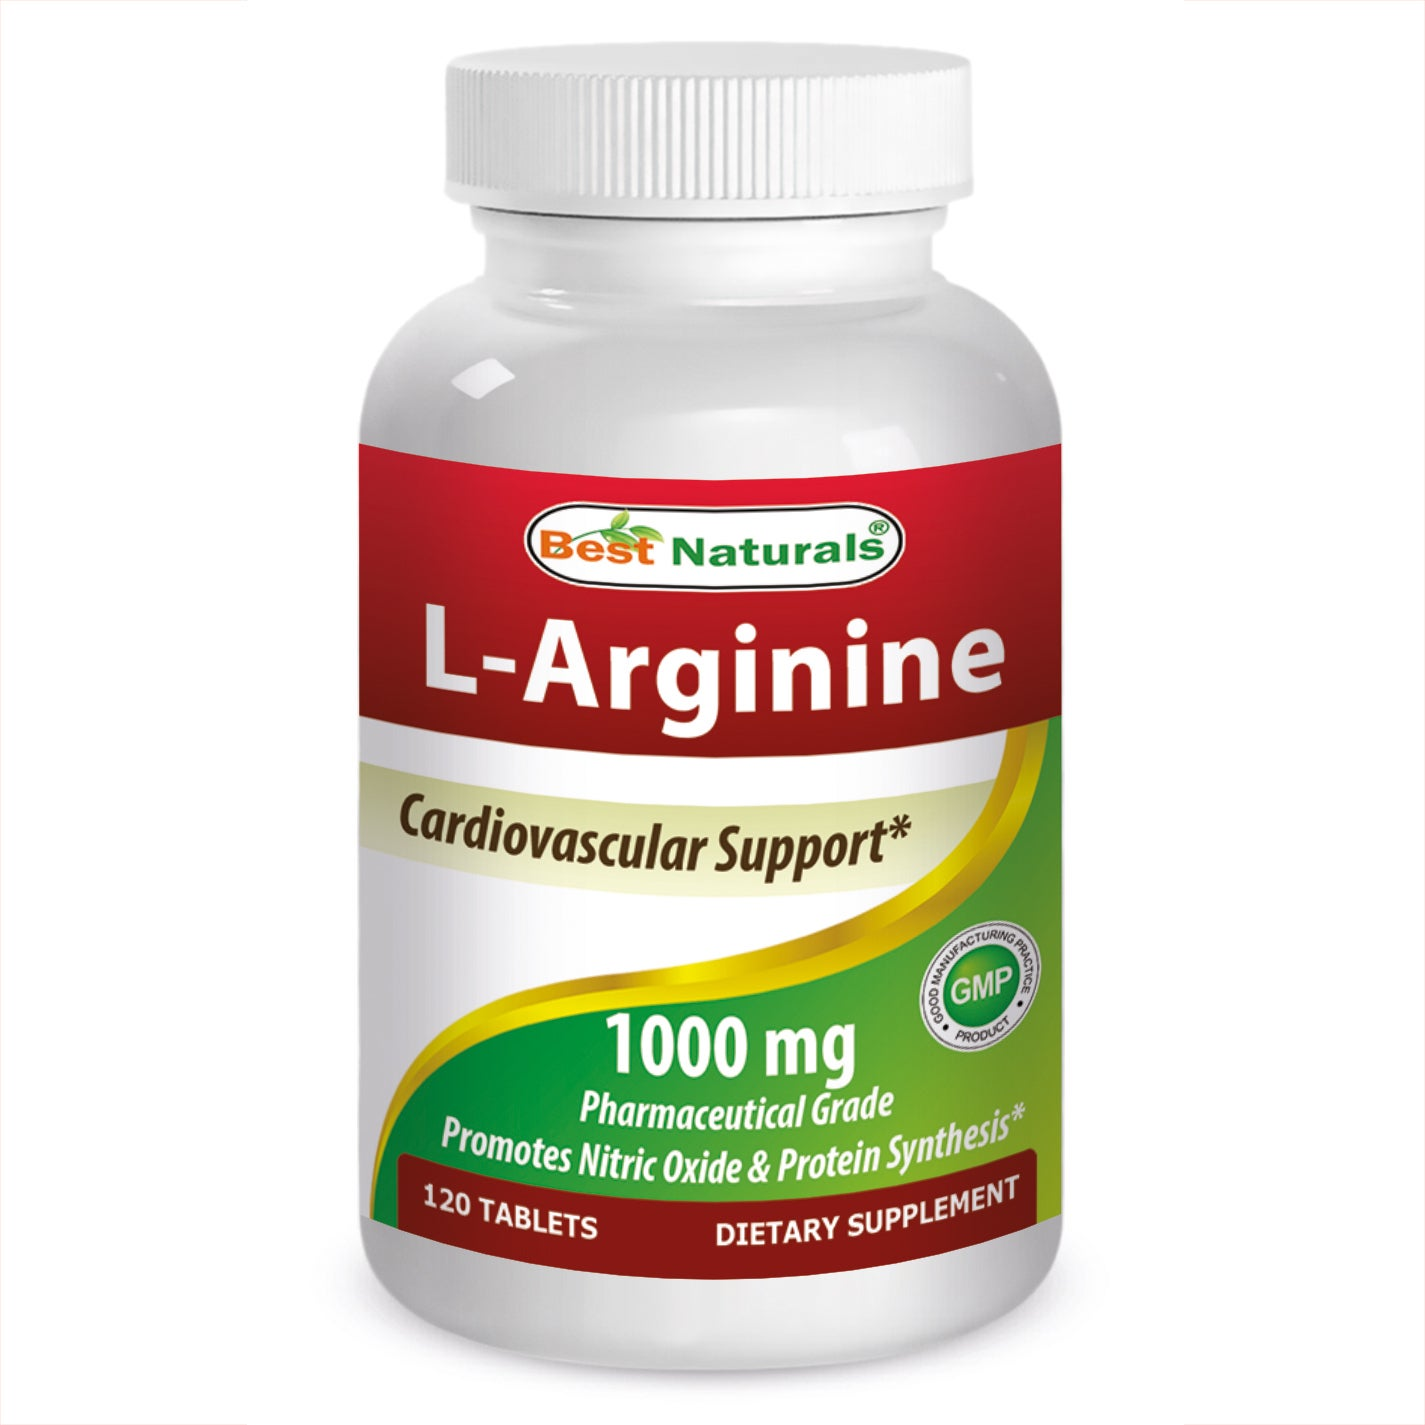 Best Naturals L-Arginine 1000mg Pharmaceutical Grade (120 Tablets) - Free  Shipping On Orders Over $45 - Overstock - 21275952